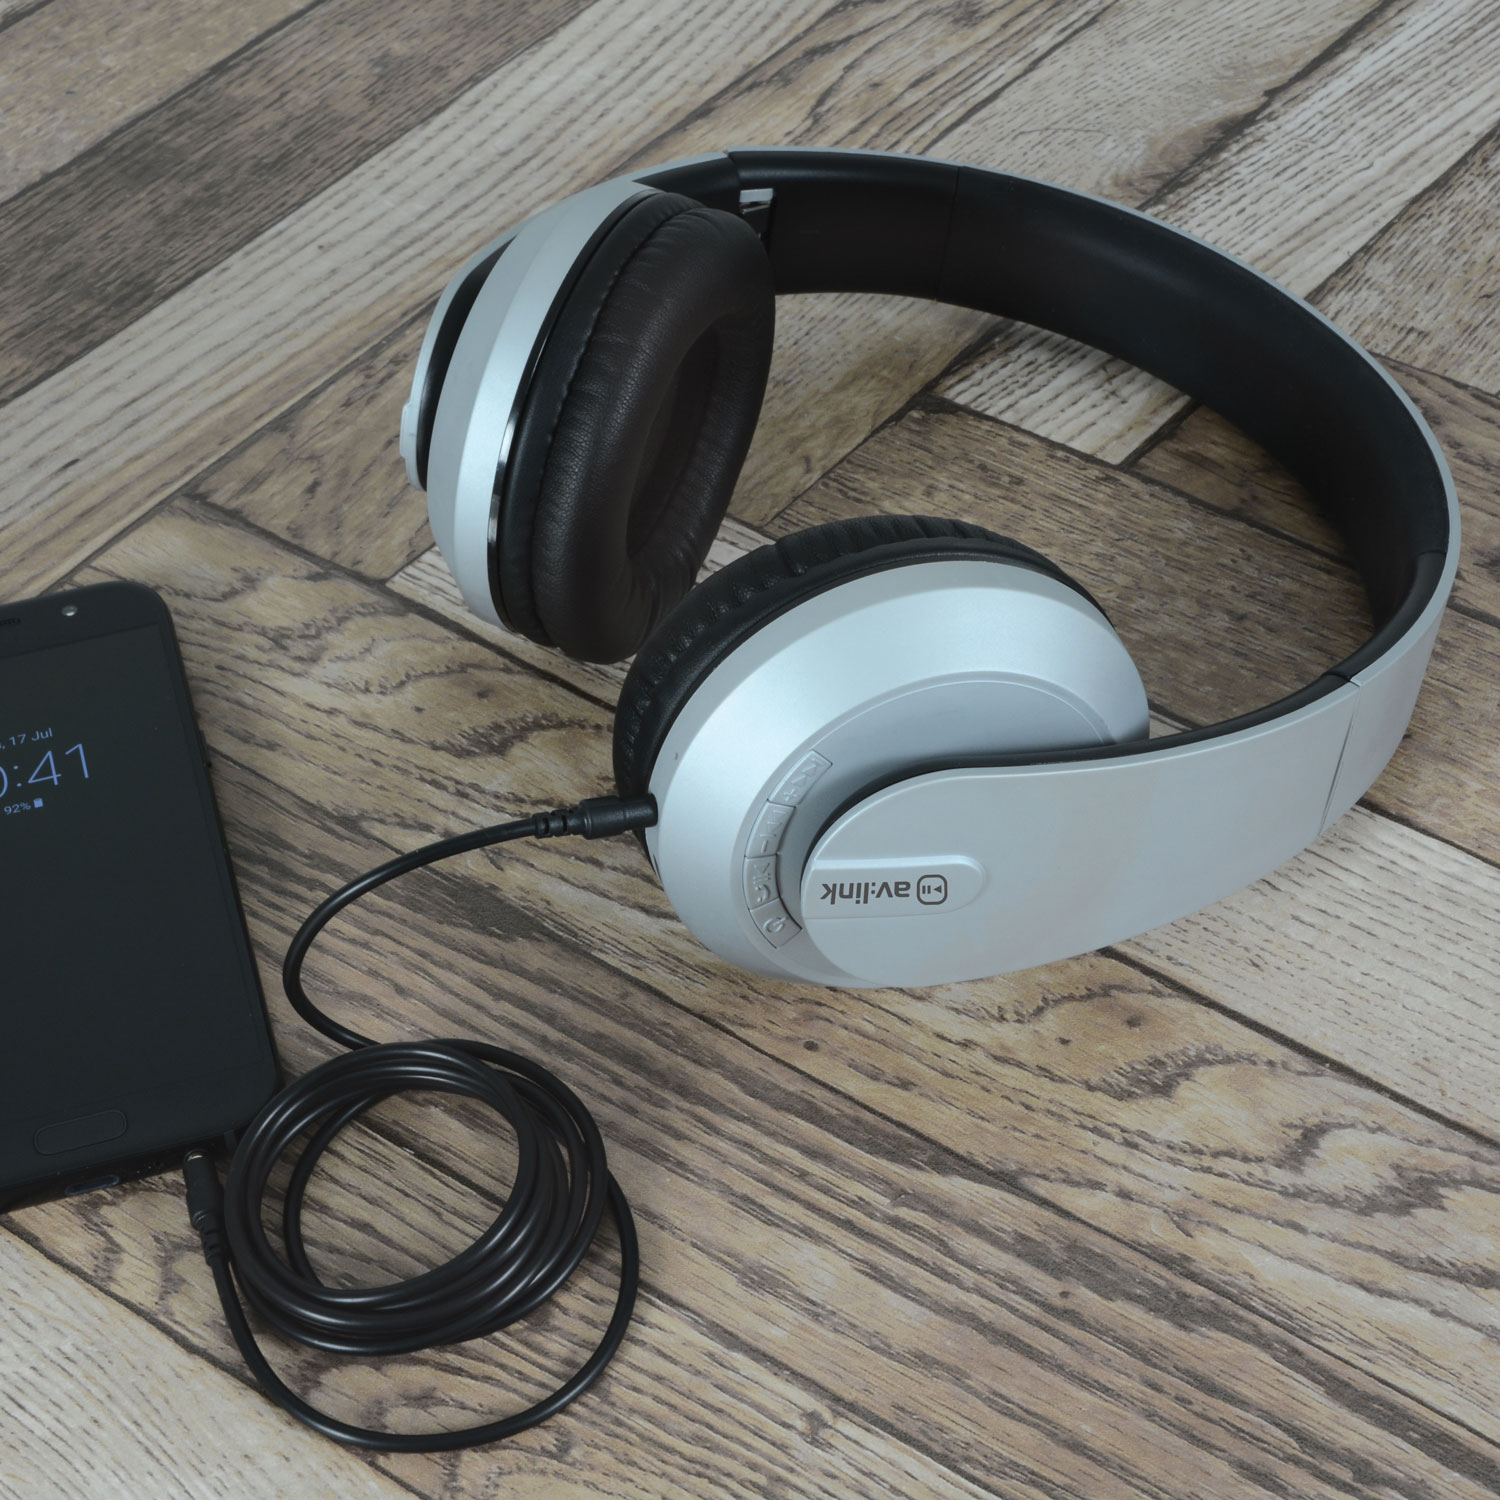 SFBH1-SLV silver satin finish Bluetooth headphones with dynamic bass